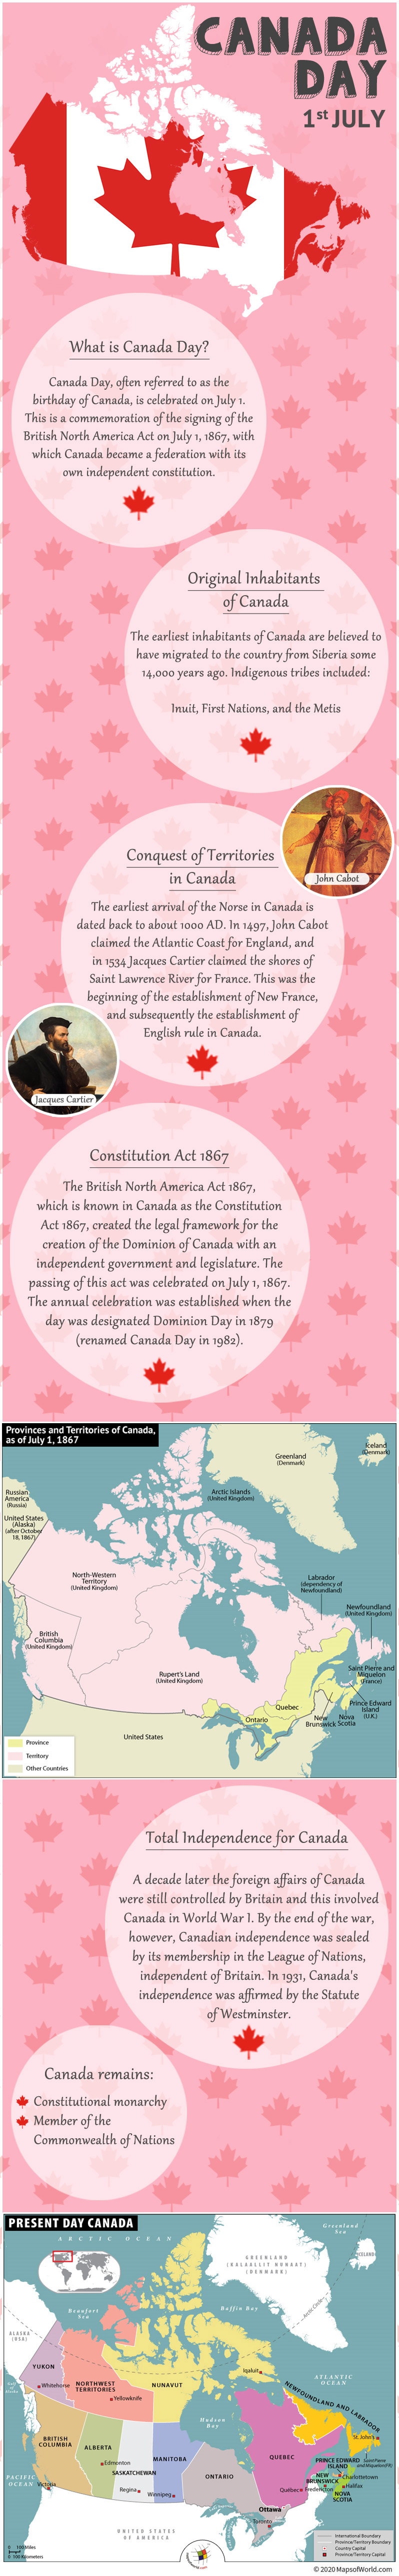 Infographic - What is Canada Day